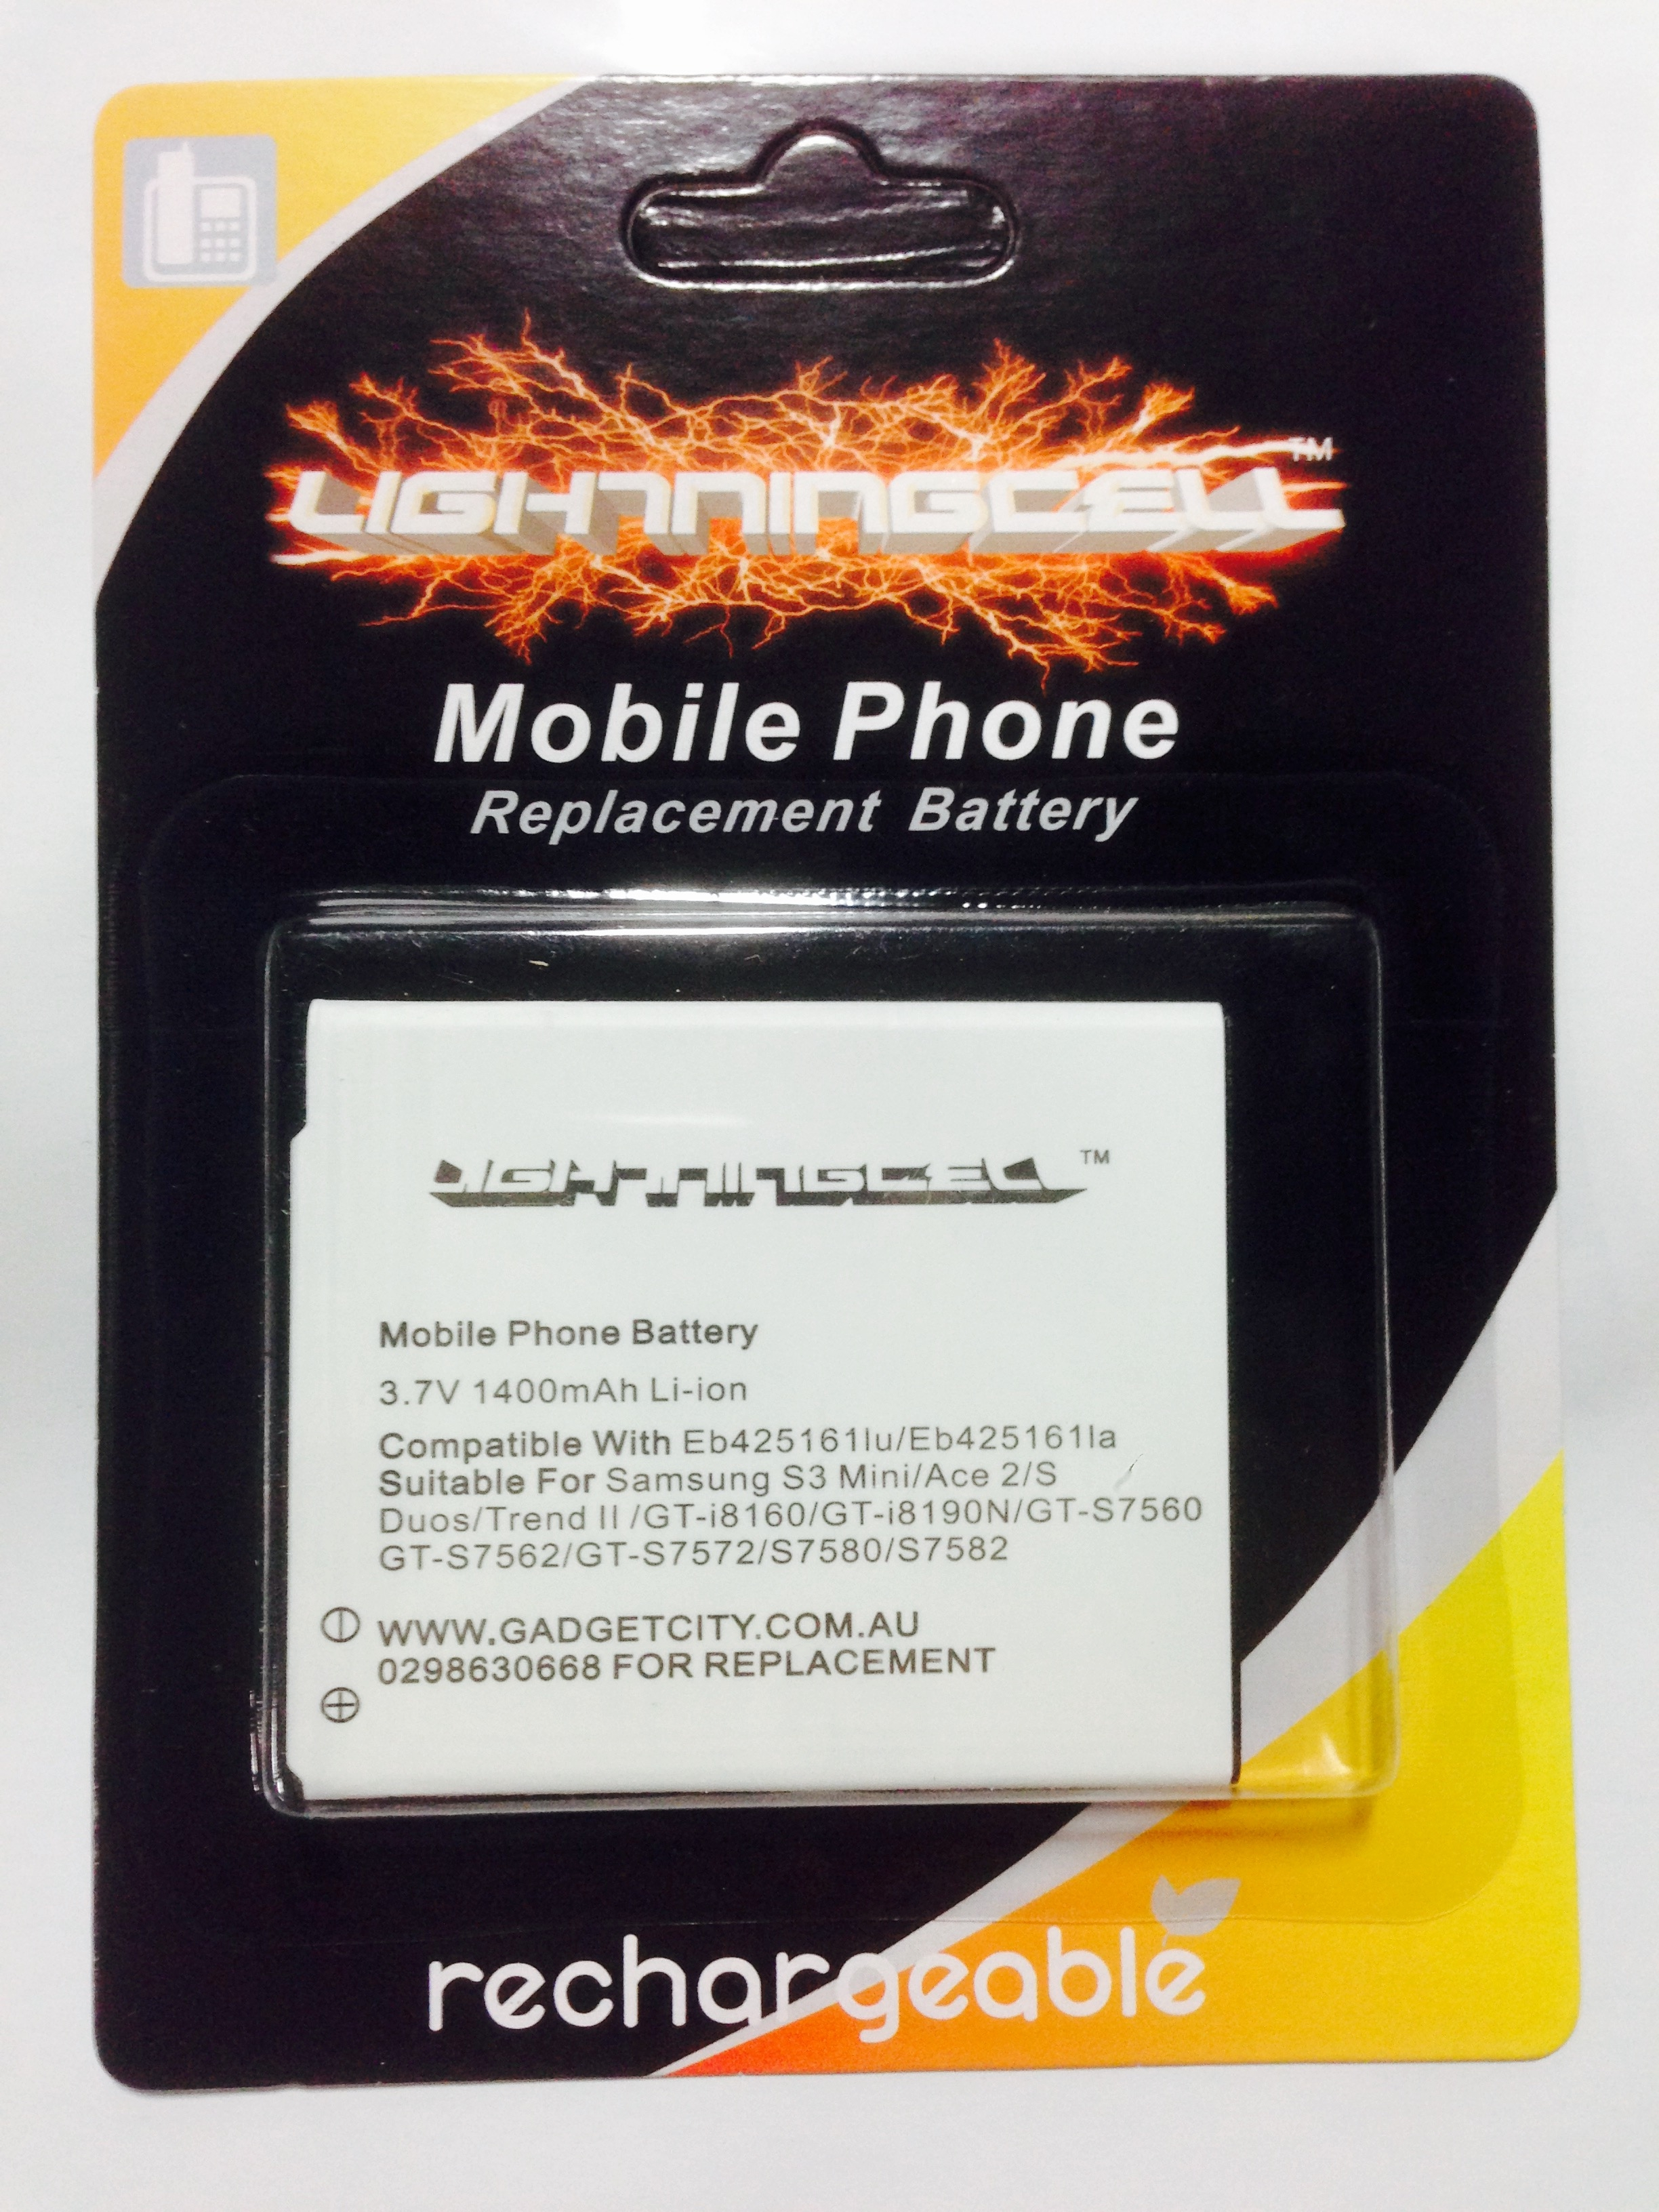 BATTERY SAMSUNG EB425161LU MOBILE PHONE REPLACEMENT BATTERY